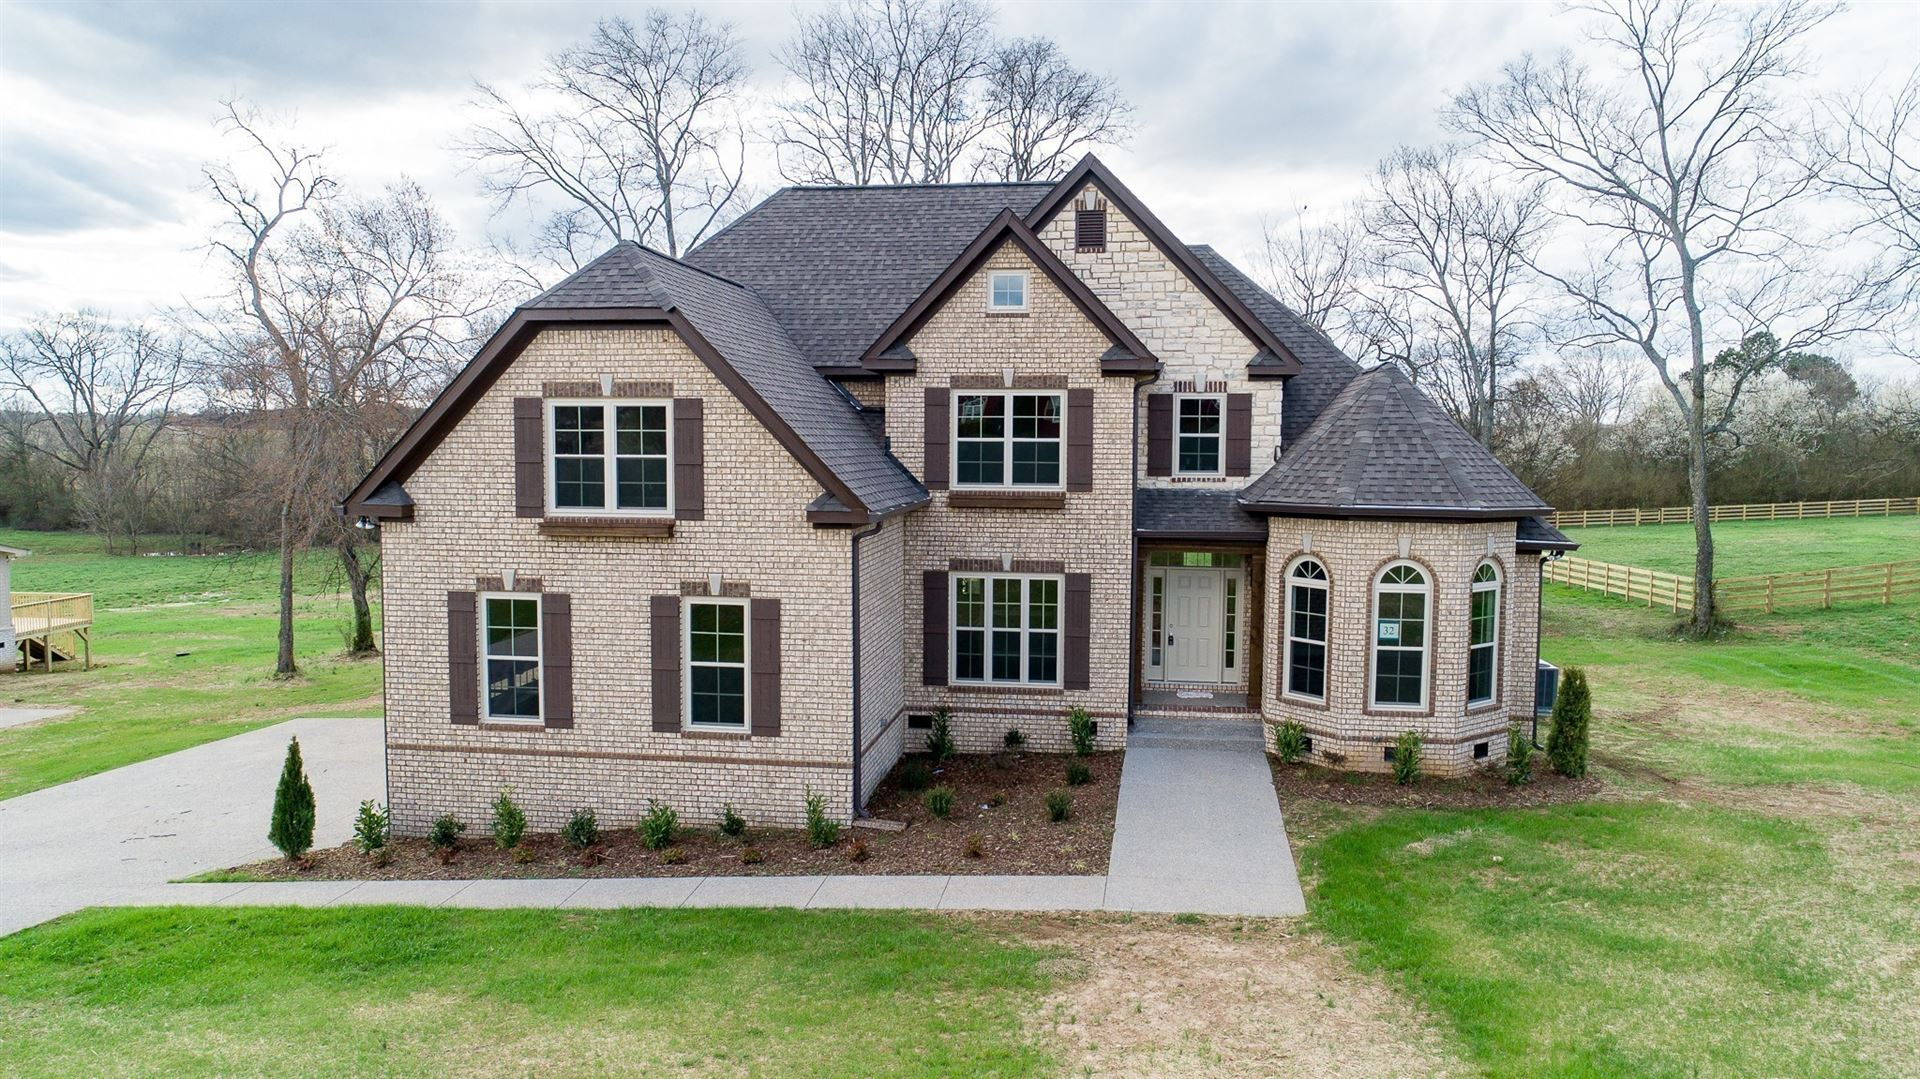 Photo of 9013 Safe Haven Place Lot 557, Spring Hill, TN 37174 (MLS # 2200943)